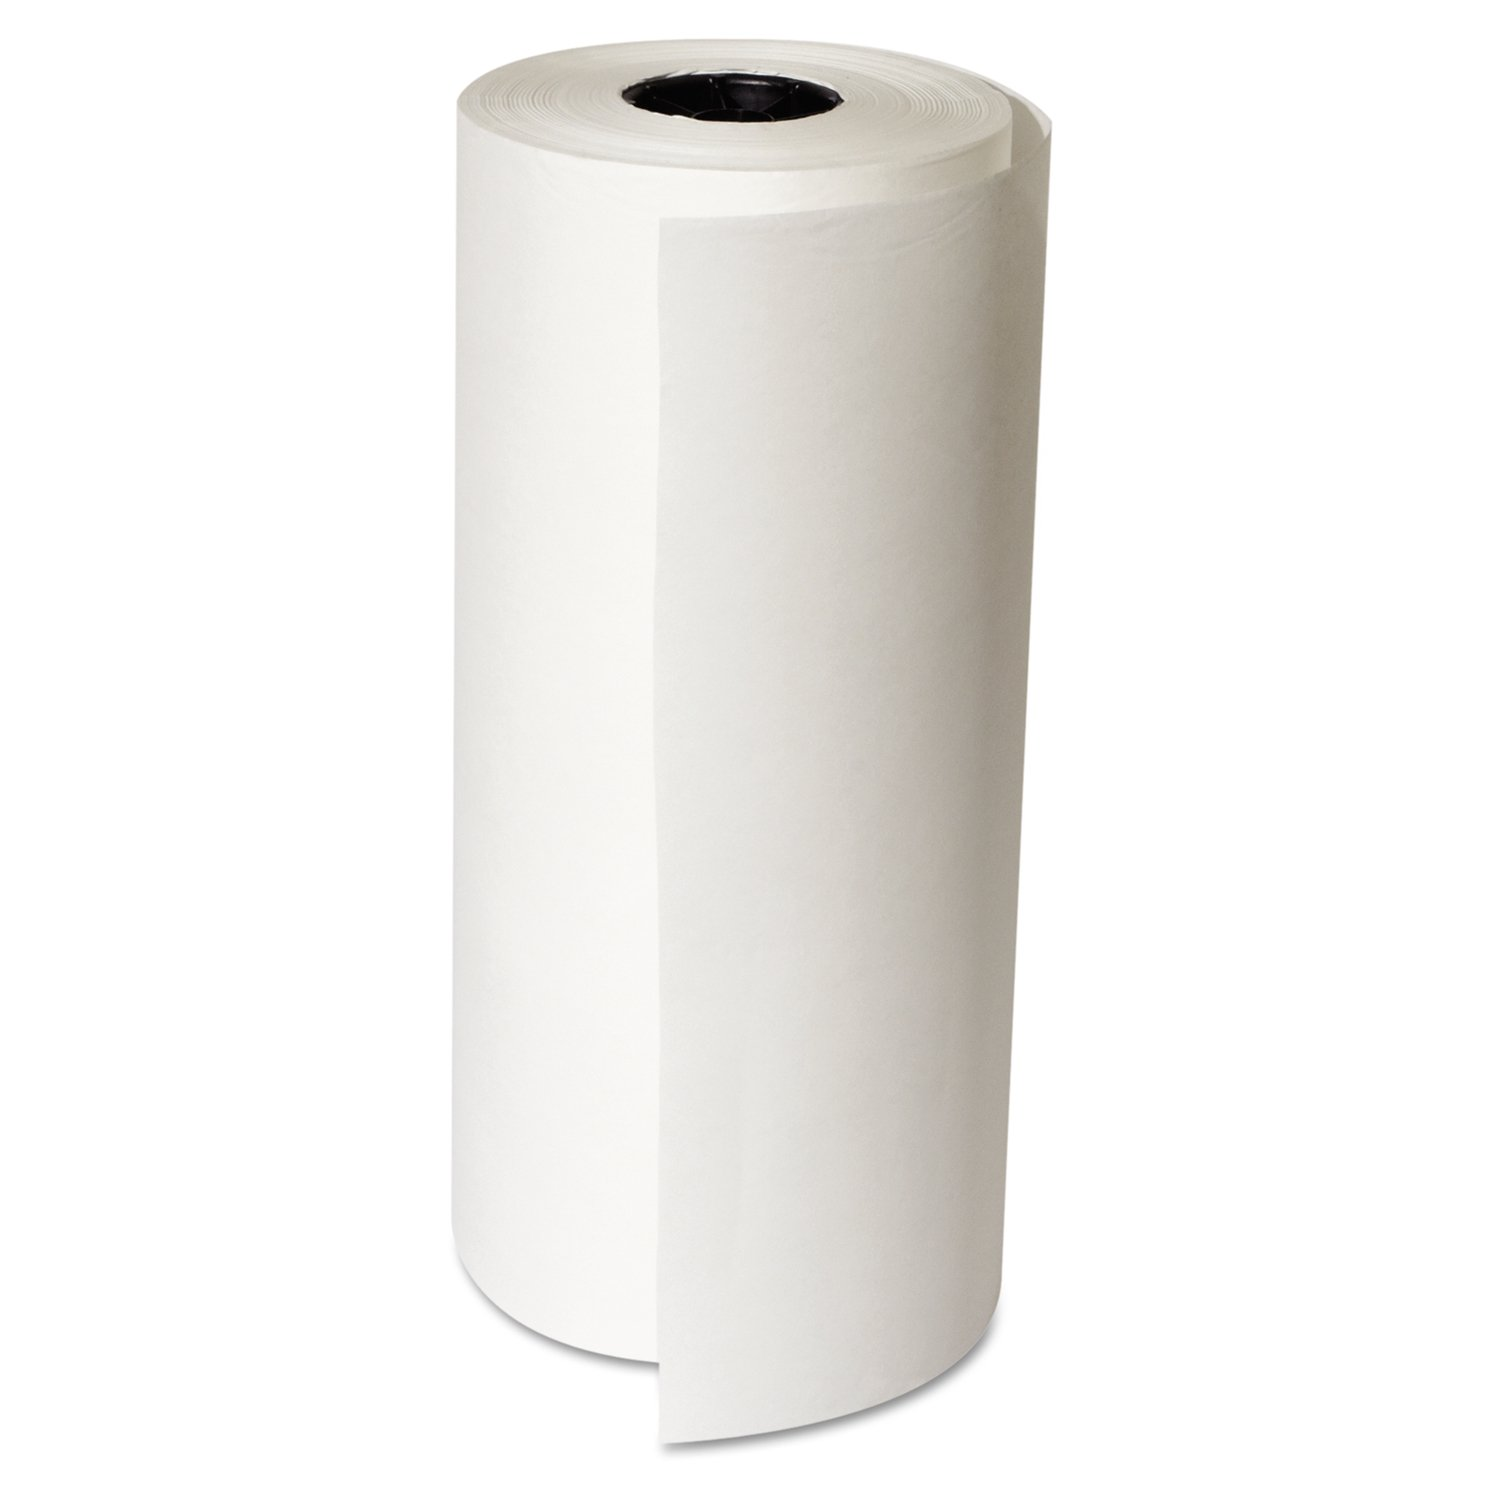 "Boardwalk B2440900 Butcher Paper, 24"" X 900ft, White by BOARDWALK"